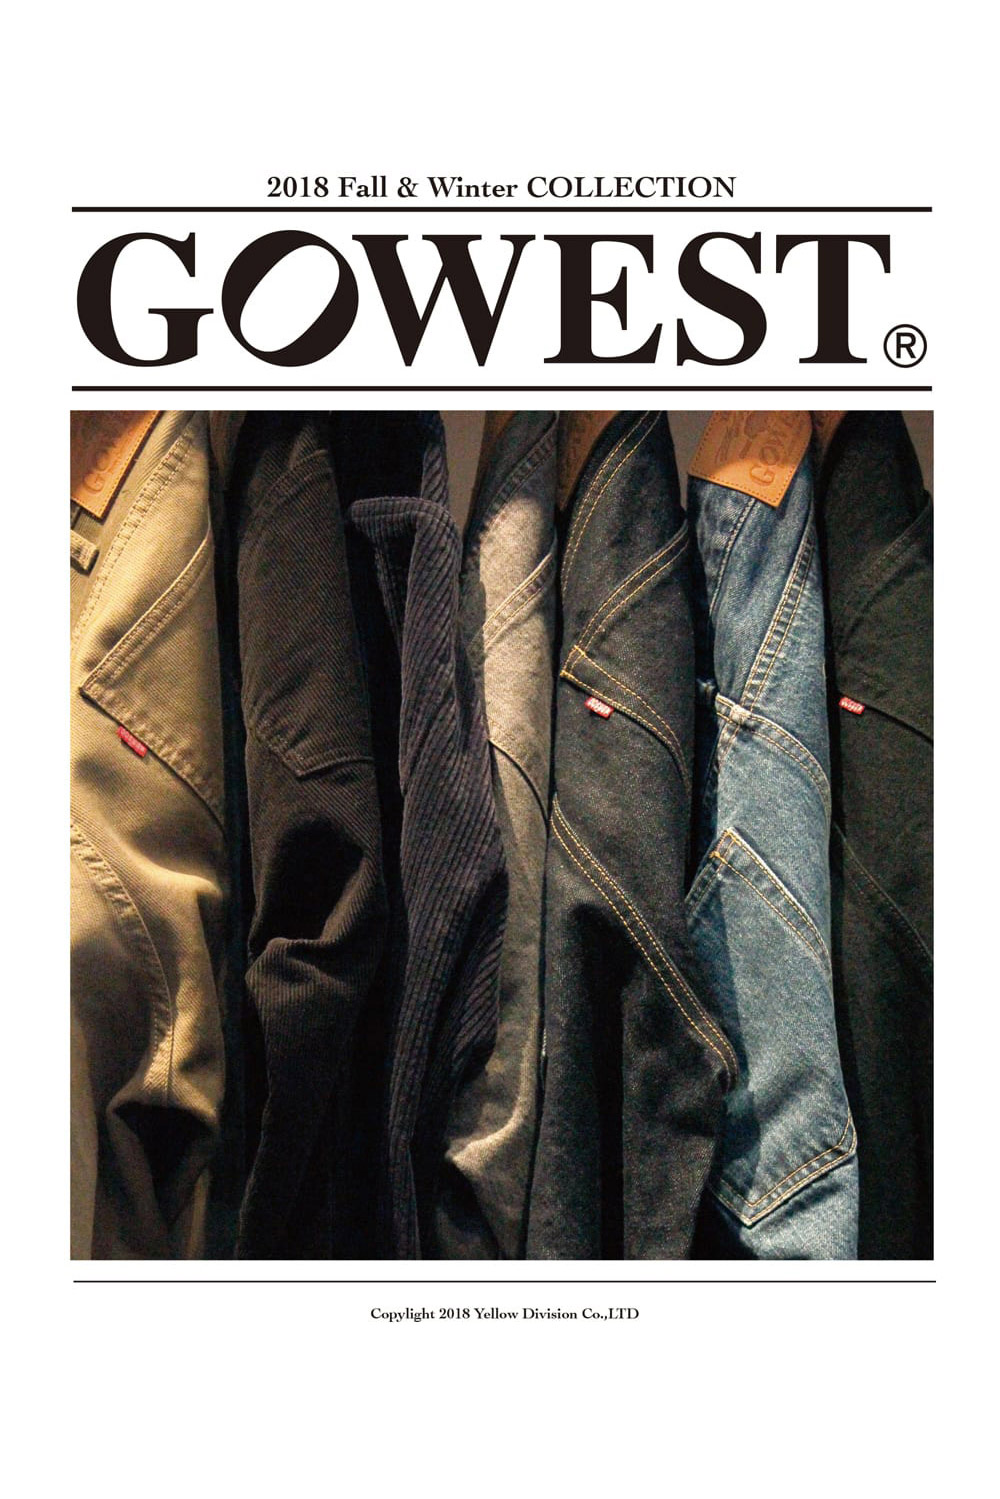 GOWEST 2018 Fall&Winter LOOKBOOK